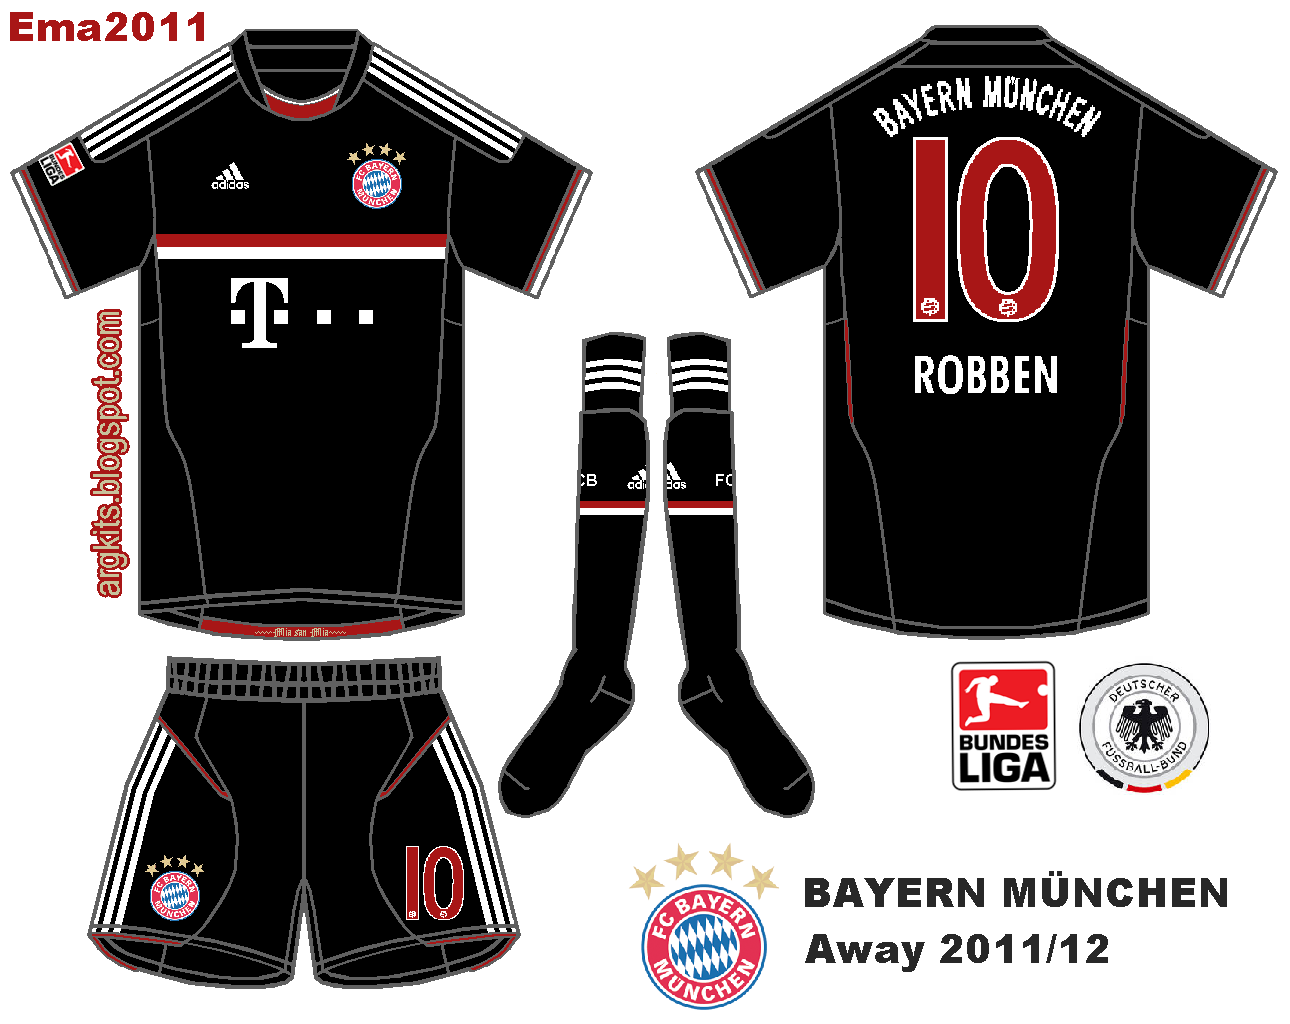 ... logo del bayernmunich 512x512 dream league flamengo 512x512 kits